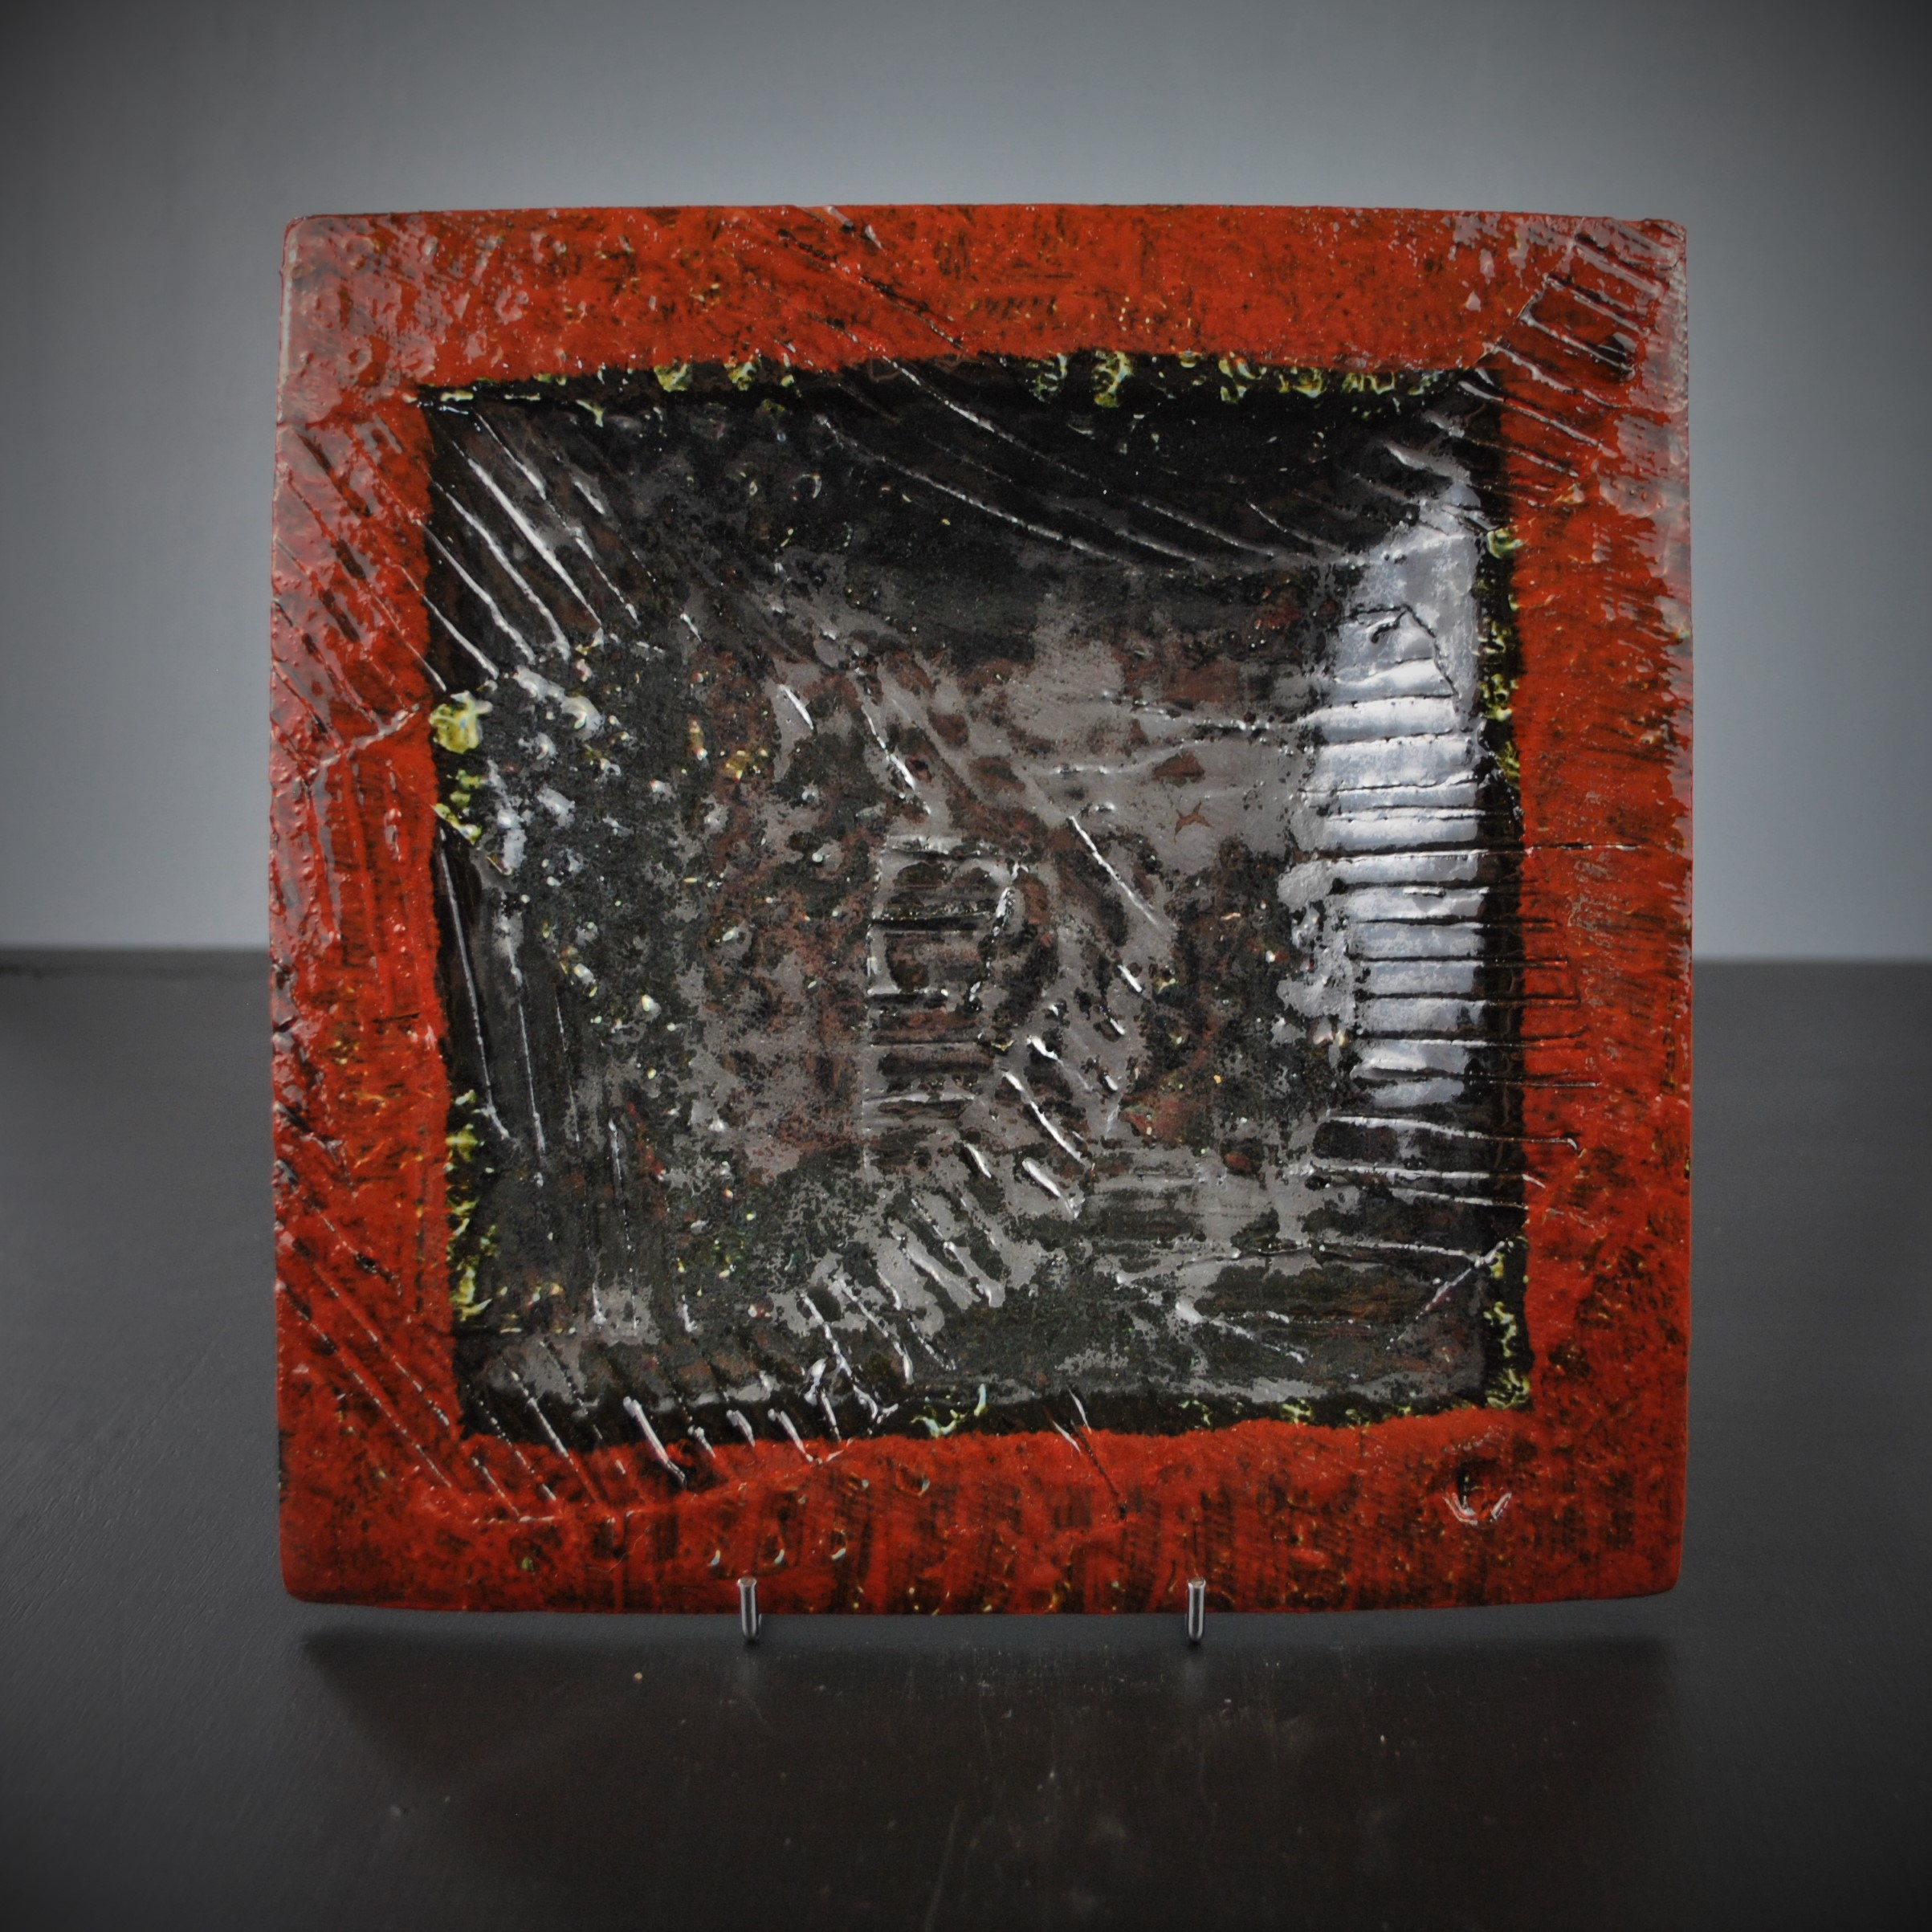 Dave Harper SQUARES series.  2019 Shallow slipware plate 2018. (Orangy red with grey centre) on stand square edit. DSC_6329 (2).JPG